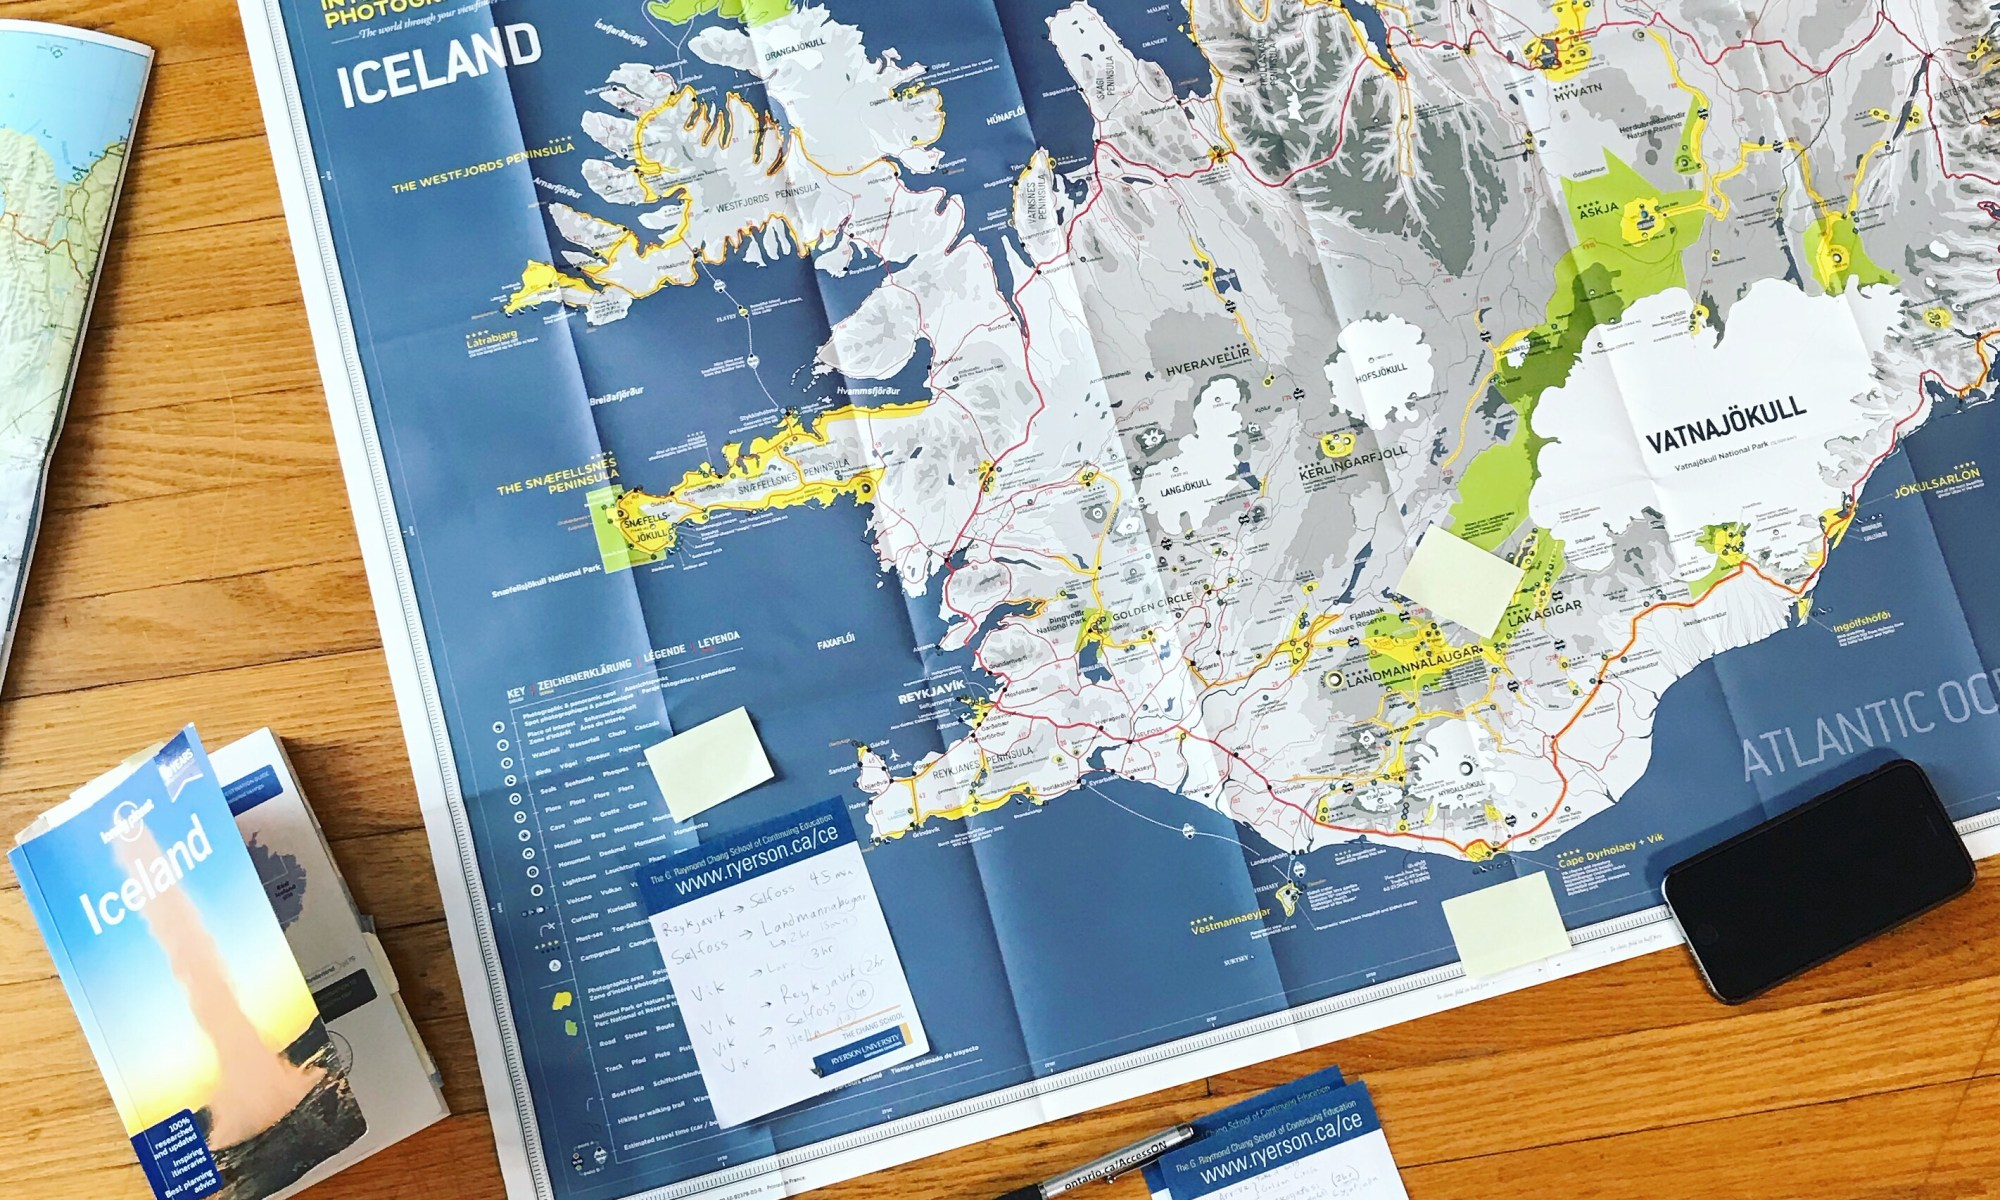 Photo of a map of Iceland next to a travel guide, a pint of beer, a notepad, and an iPhone